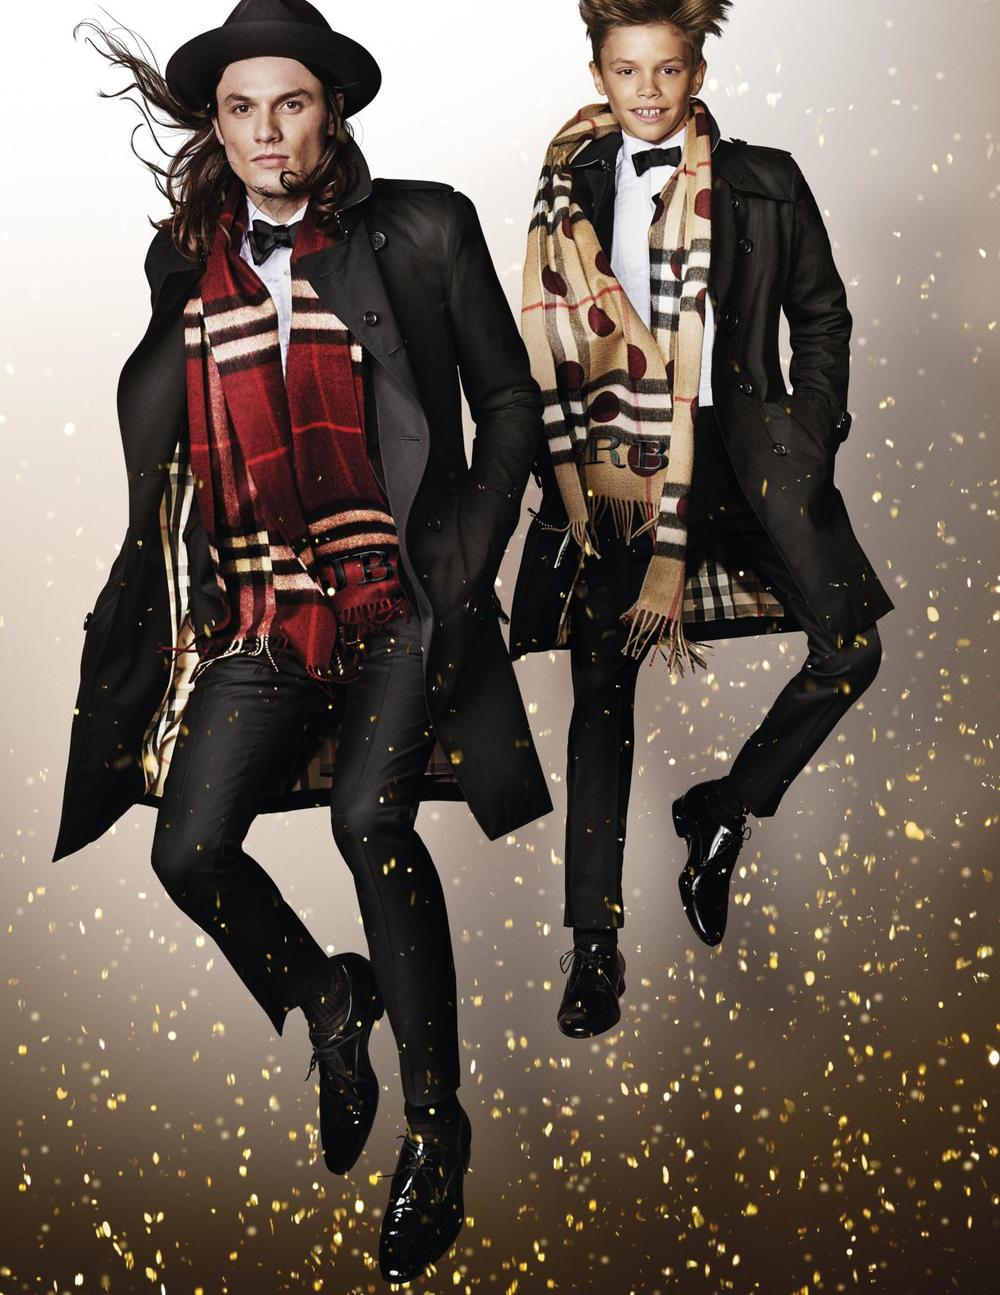 James-Bay-and-Romeo-Beckham-in-the-Burberry-Festive-Campaign-shot-by-Mario-Testino_0.jpg